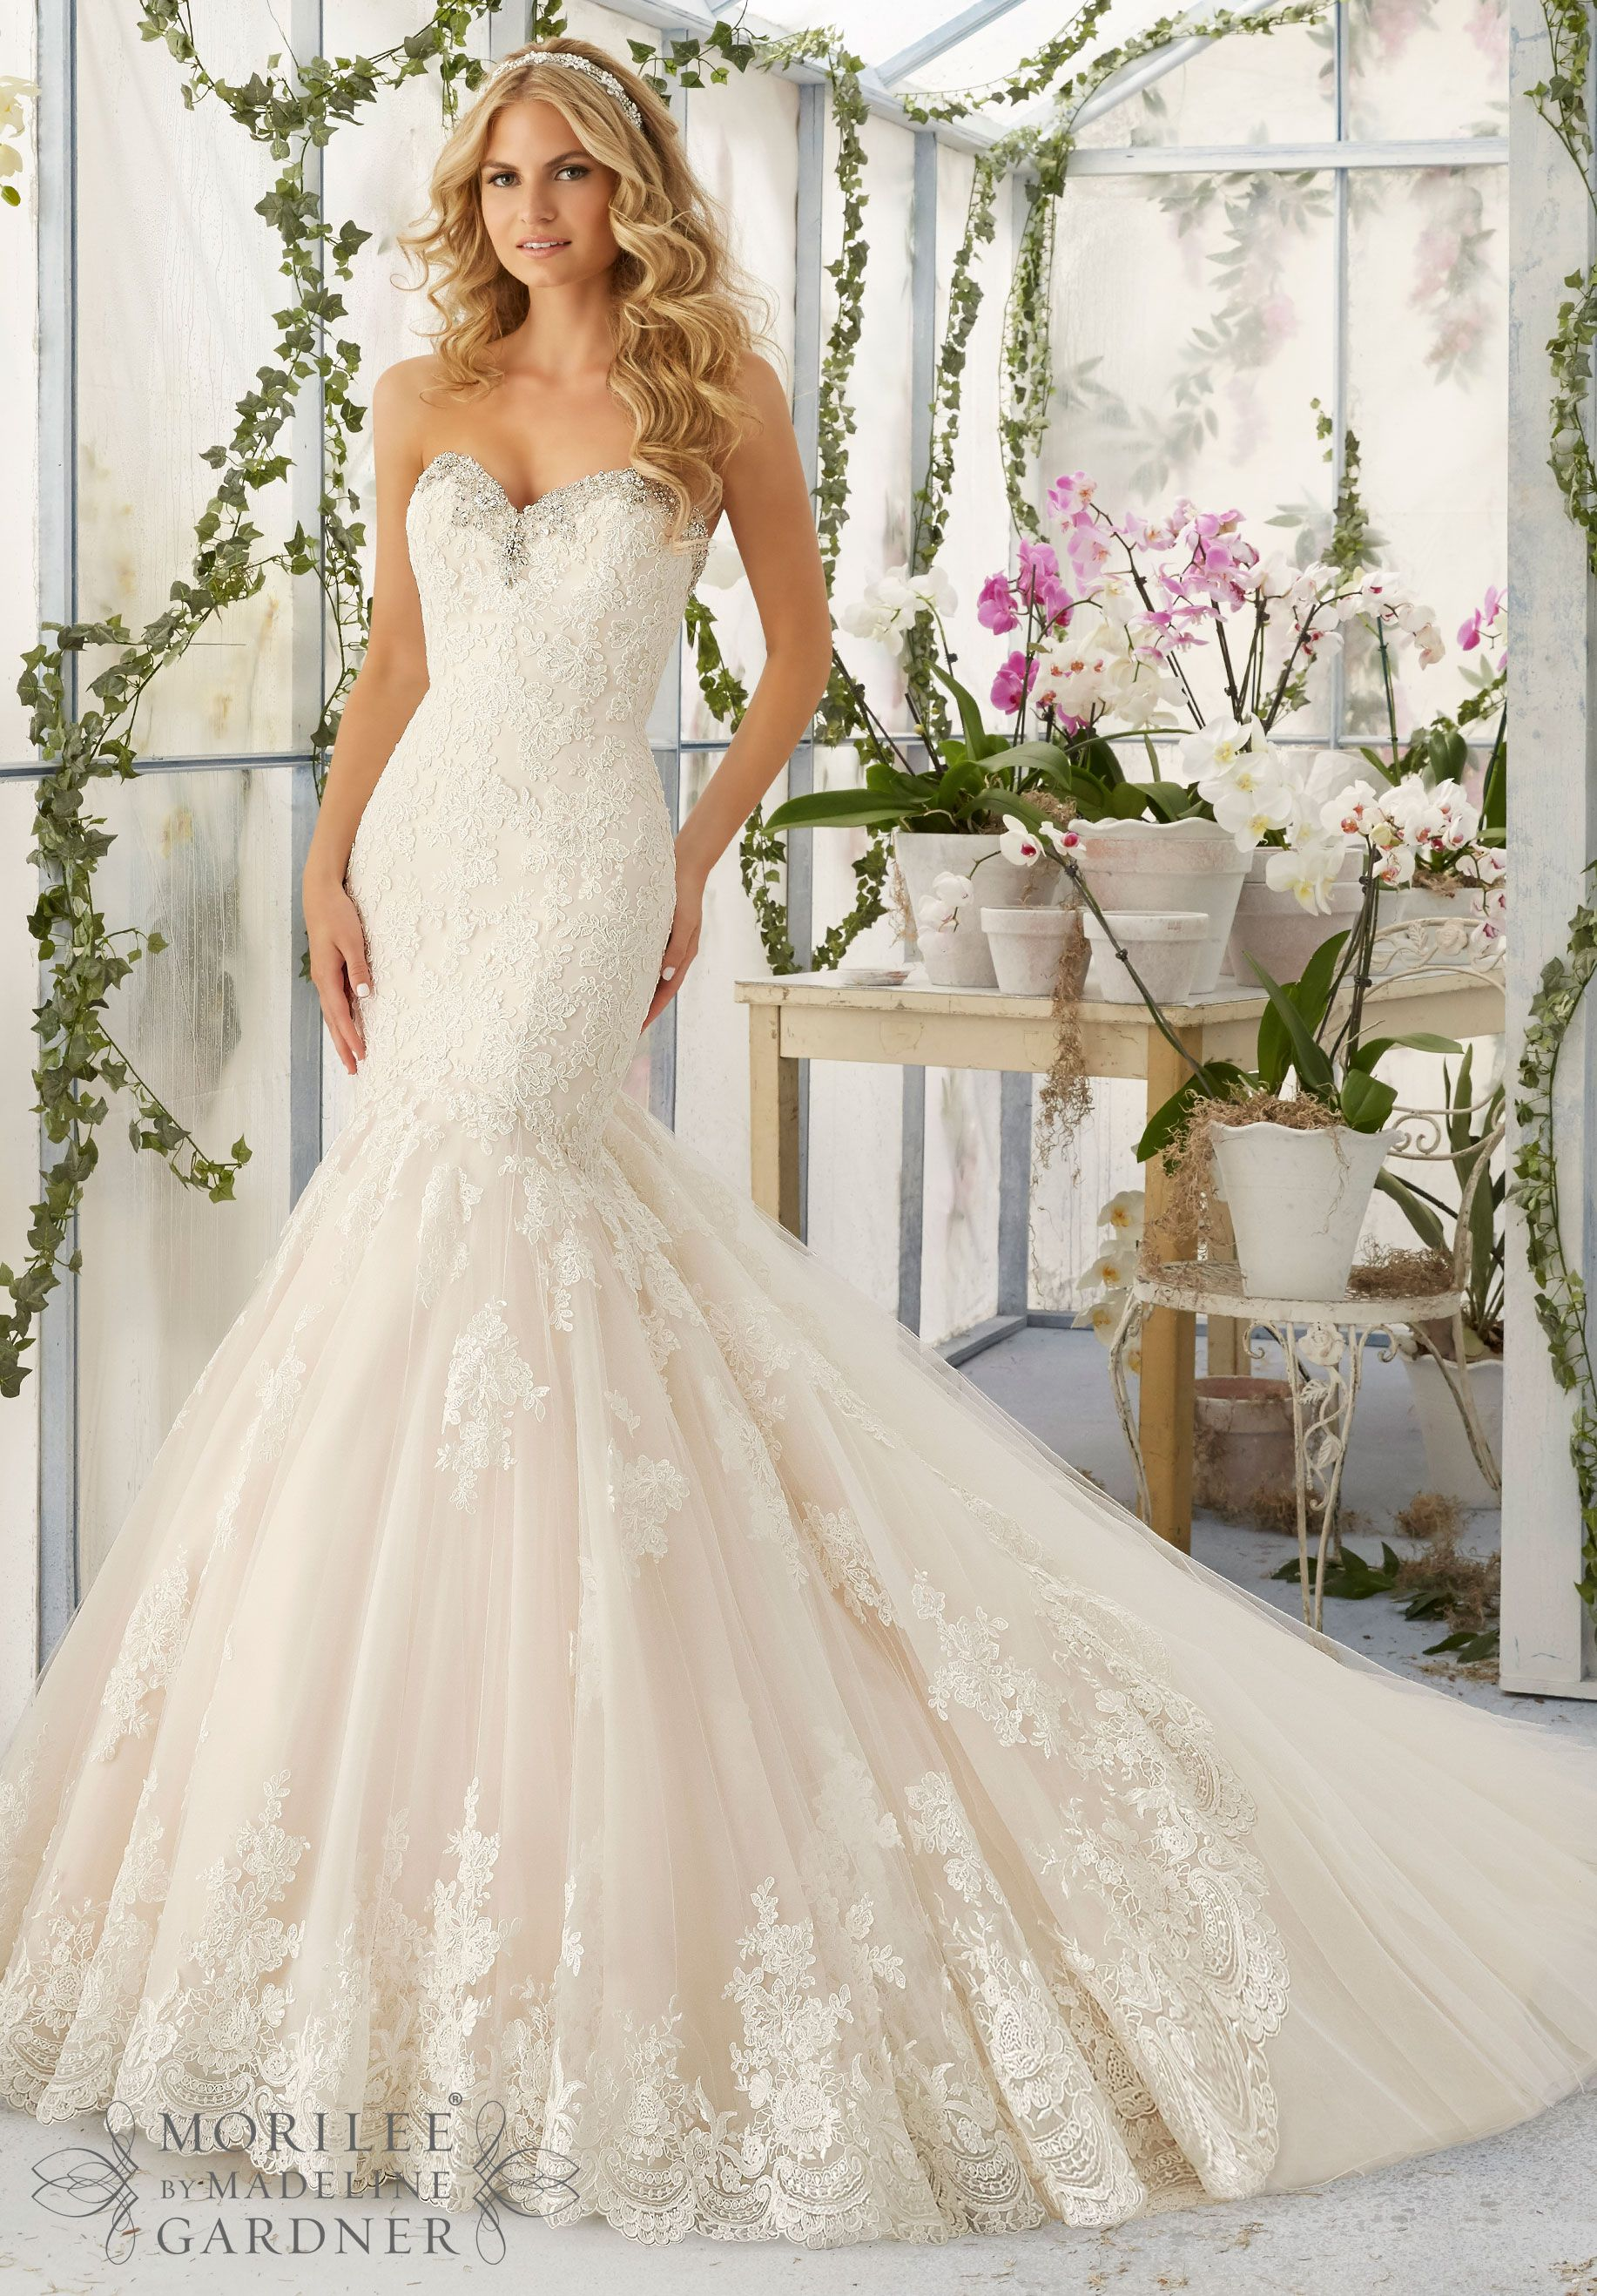 5cdd05274642 Crystal Beaded Embroidery Meets the Cascading Alencon Lace Appliques and  Scalloped Hemline Edging the Tulle Train